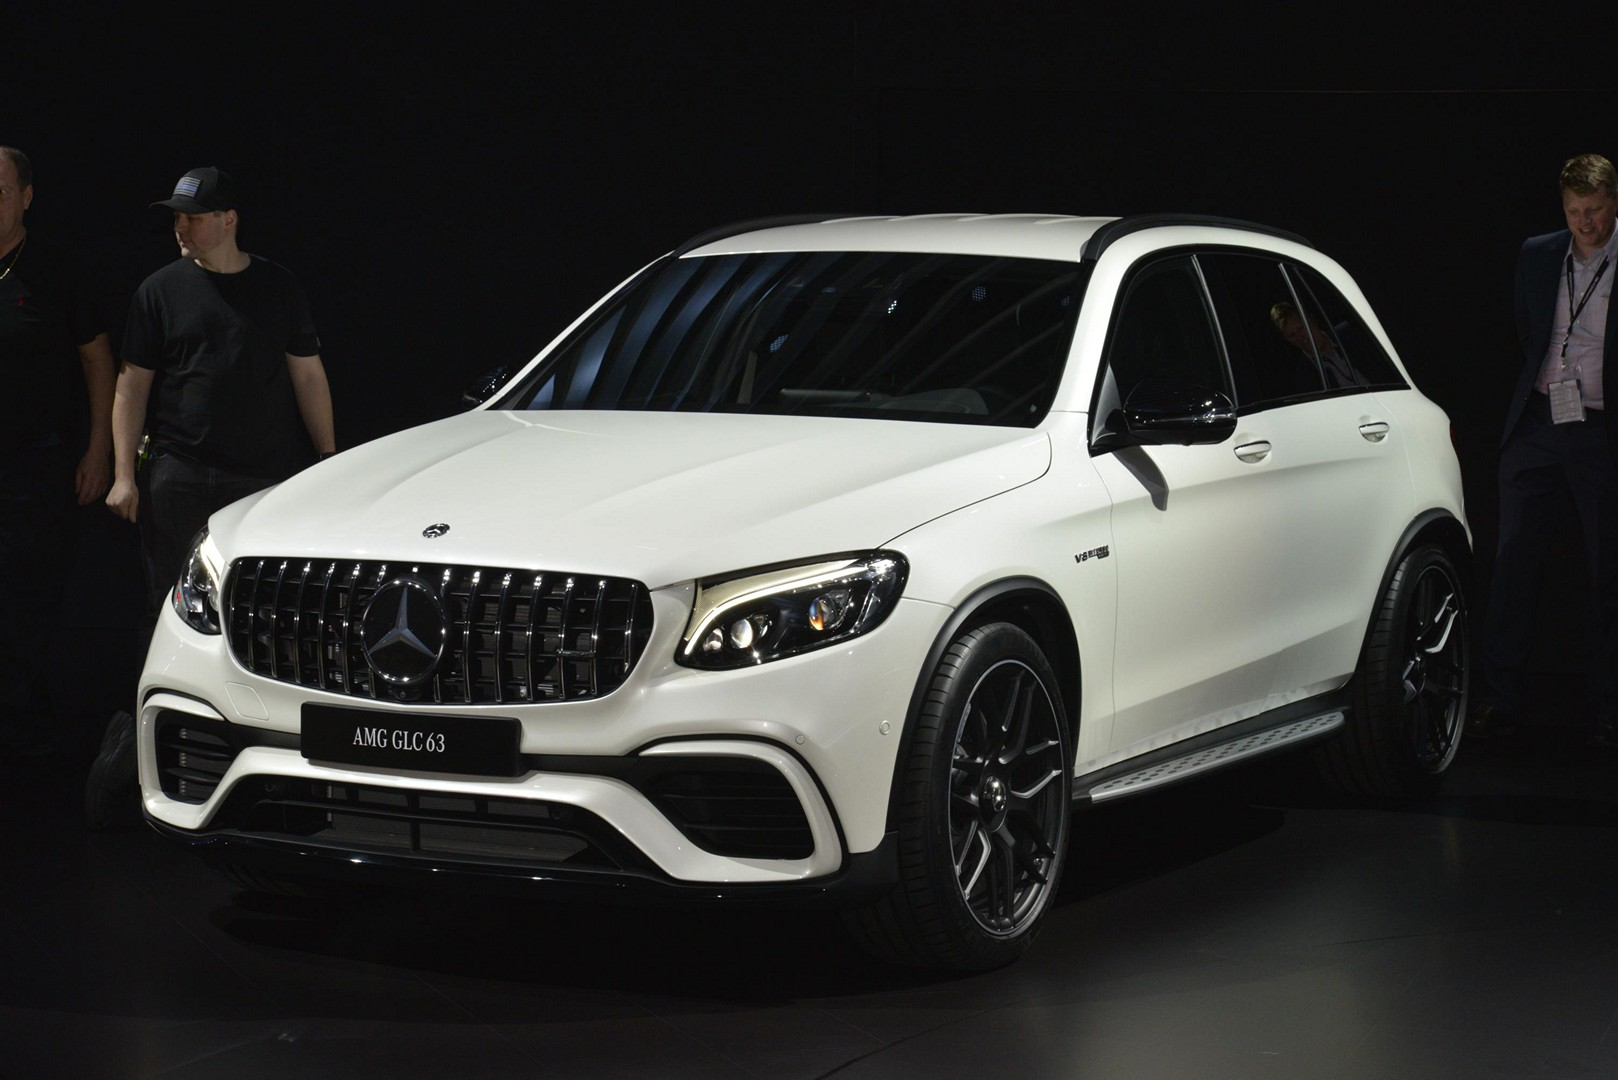 mercedes amg glc 63 s has two bodies and panamericana. Black Bedroom Furniture Sets. Home Design Ideas